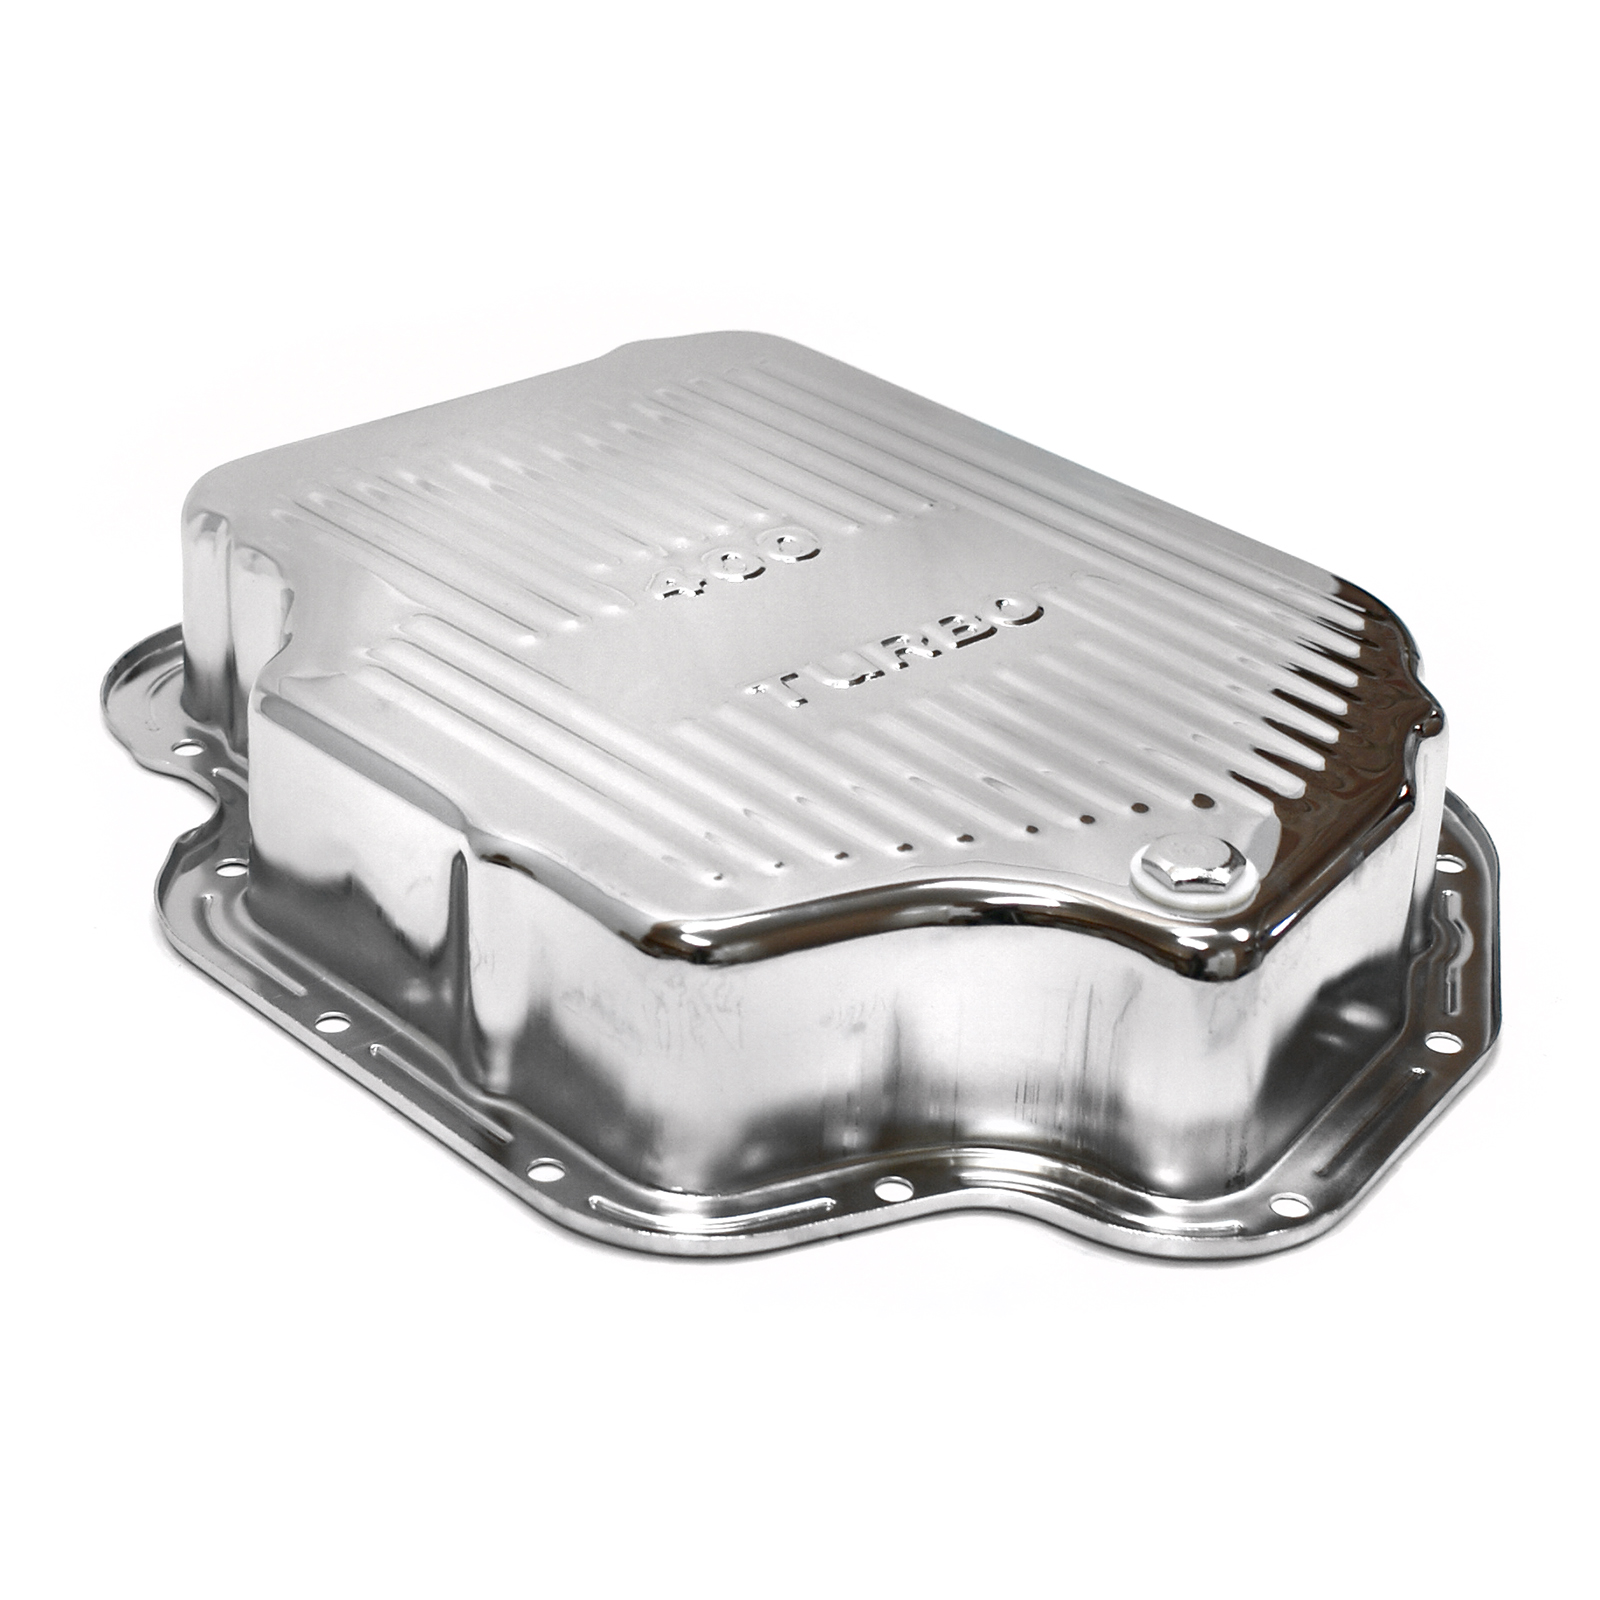 Turbo TH400 Deep Transmission Oil Pan Chrome